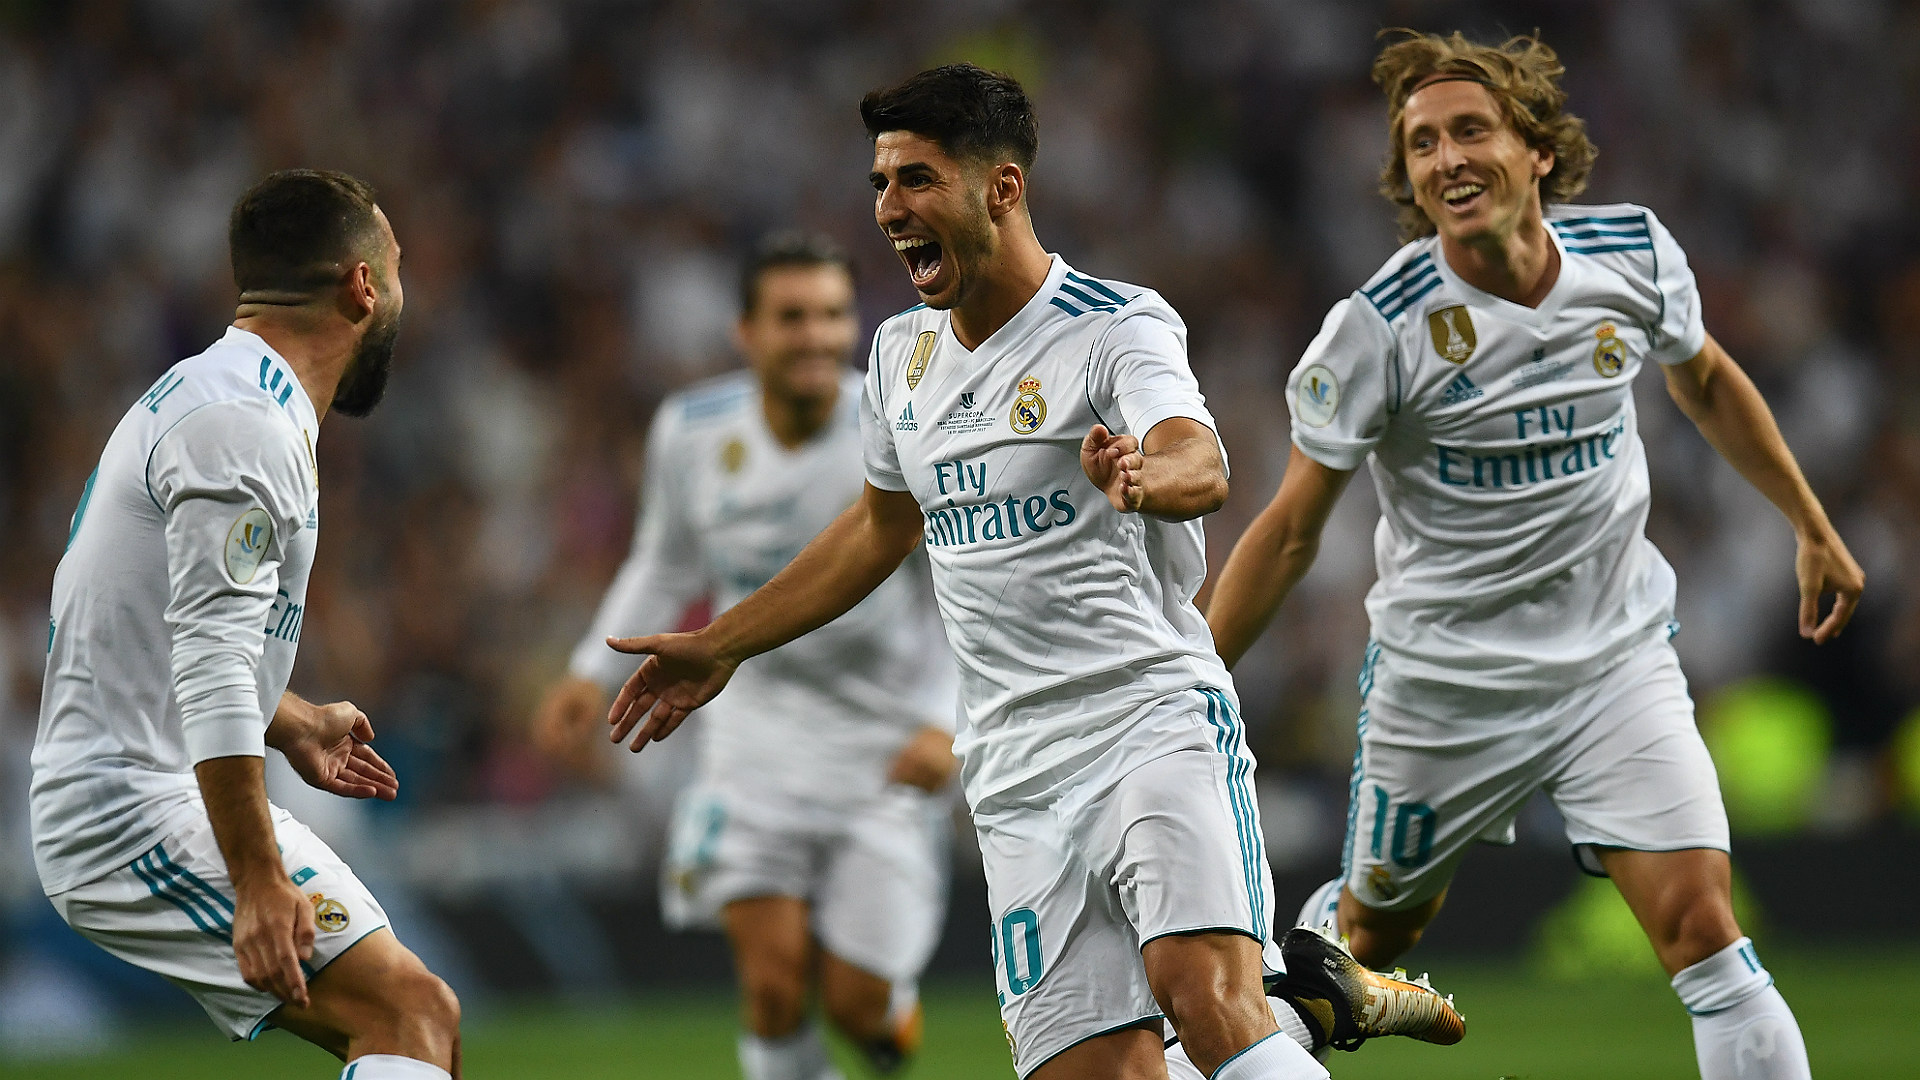 Barcelona close to sign former Real Madrid star